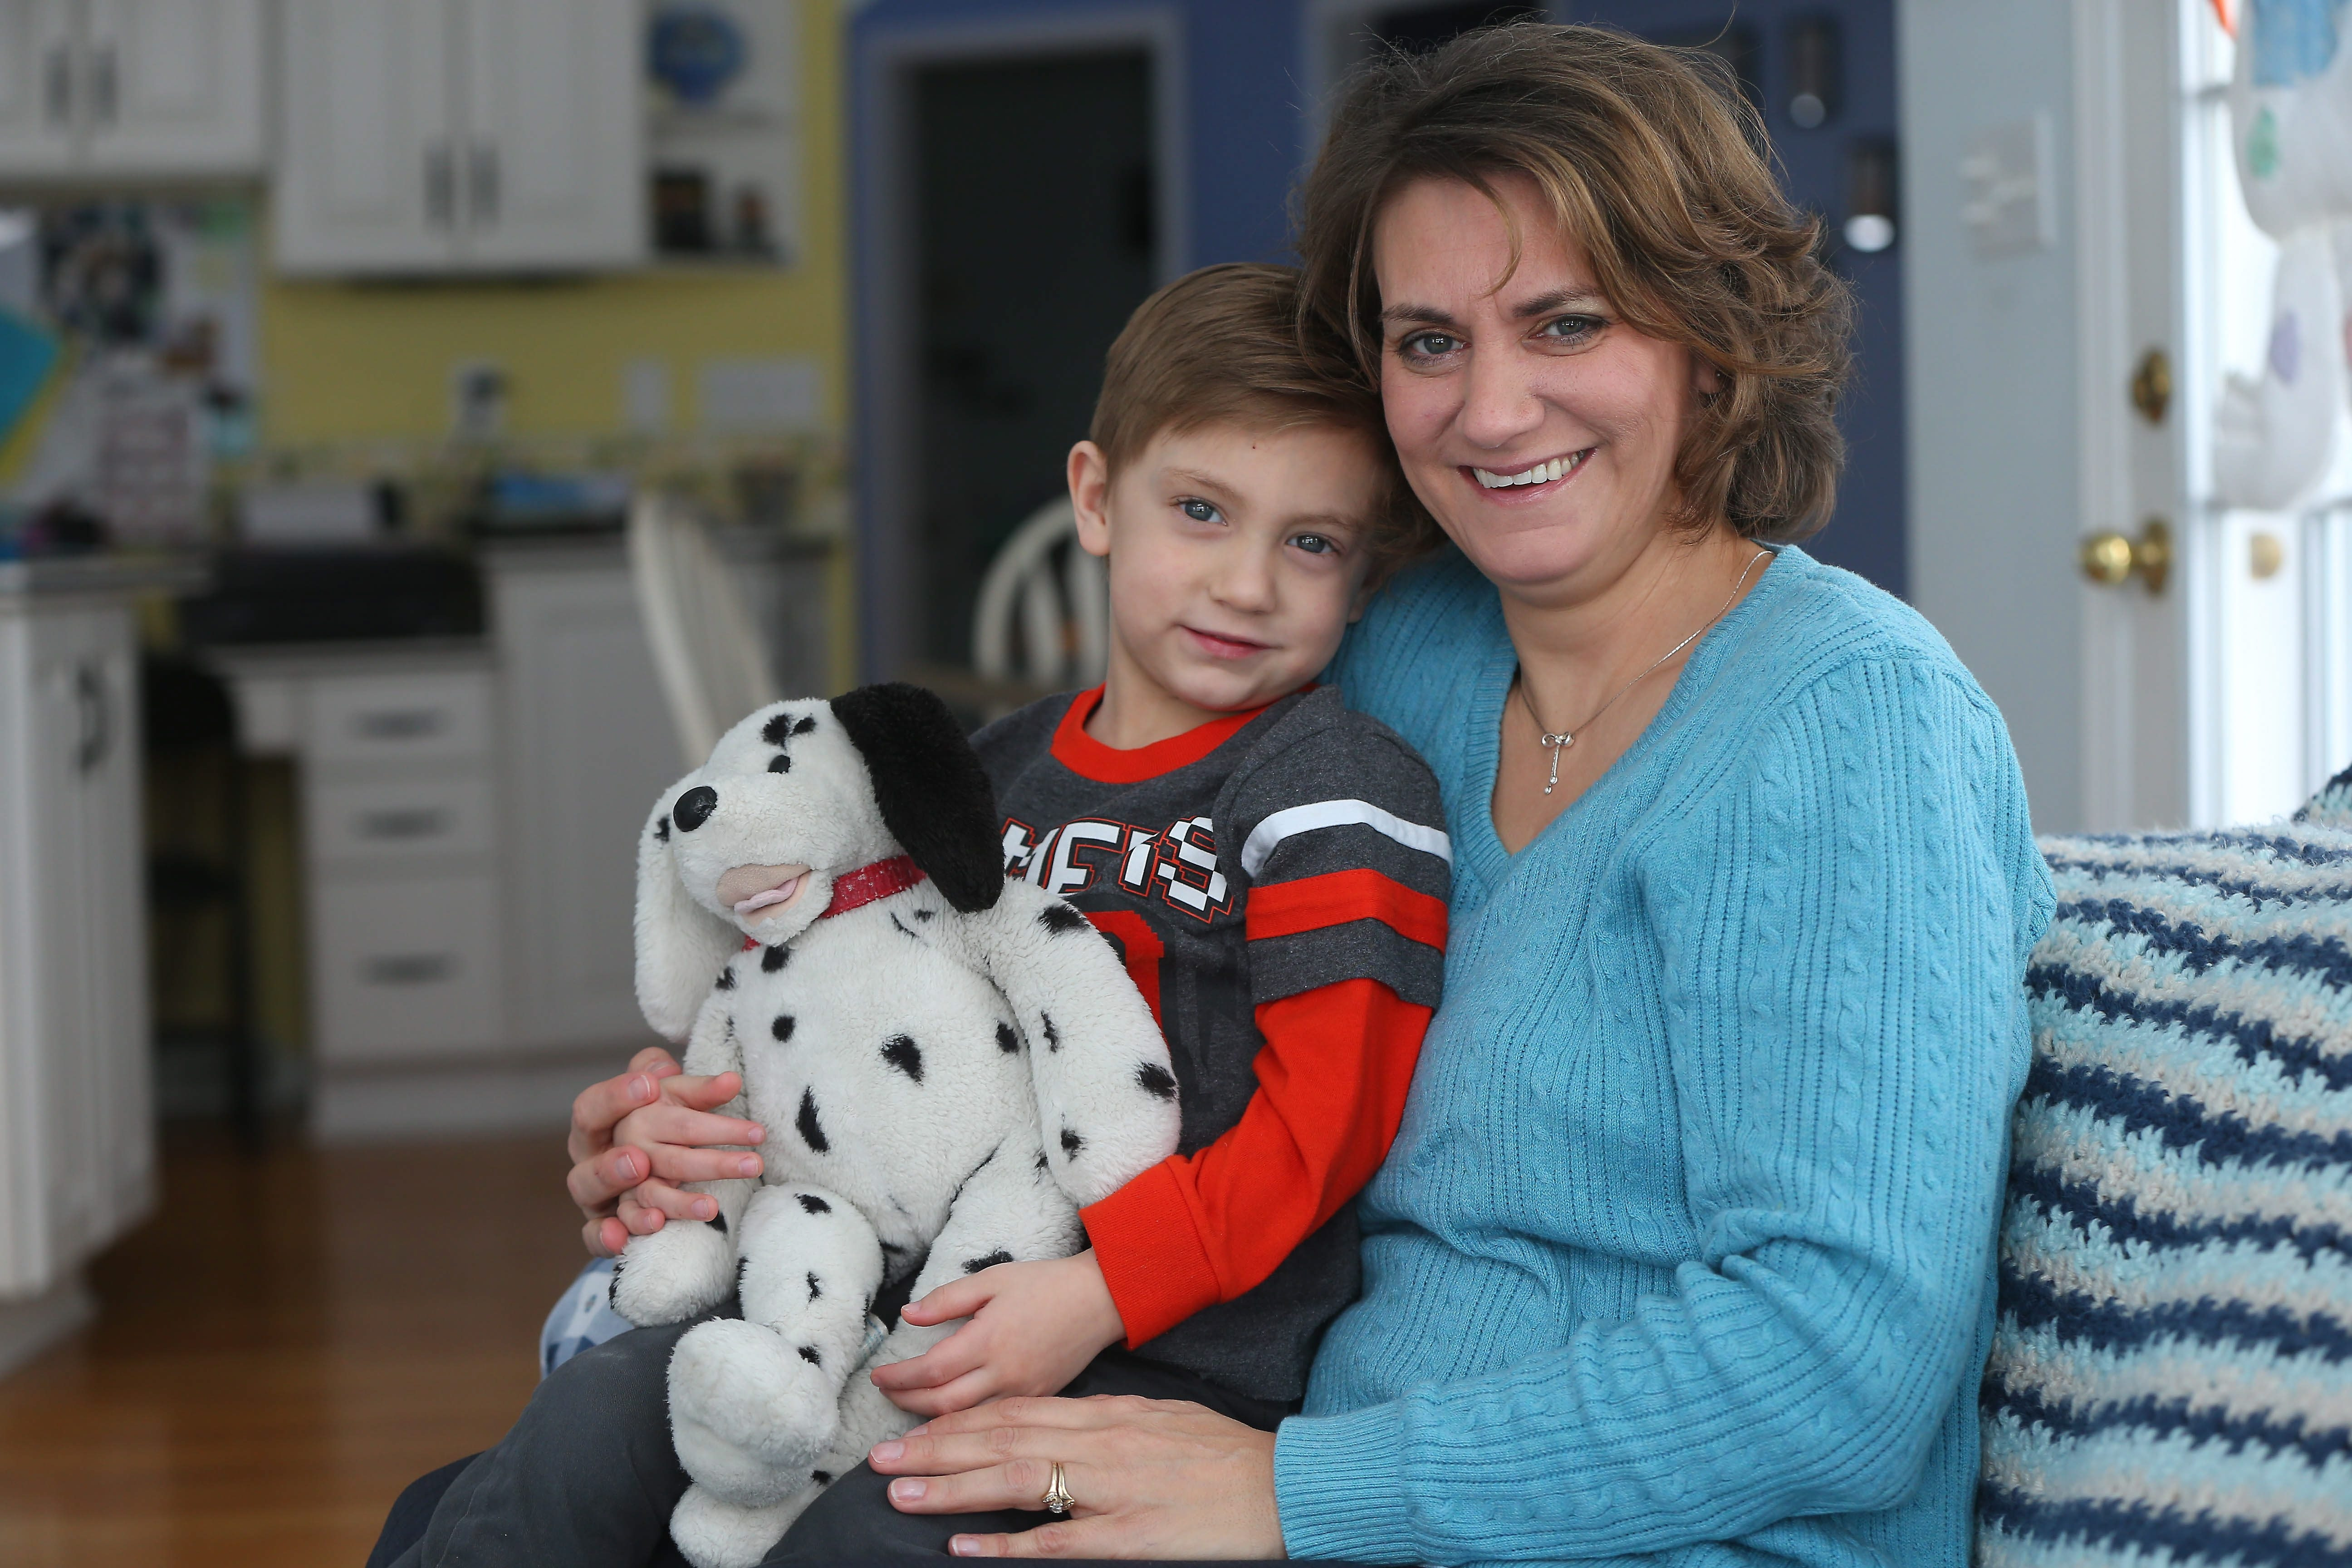 Bedtime stories become children's book for Pendleton mother